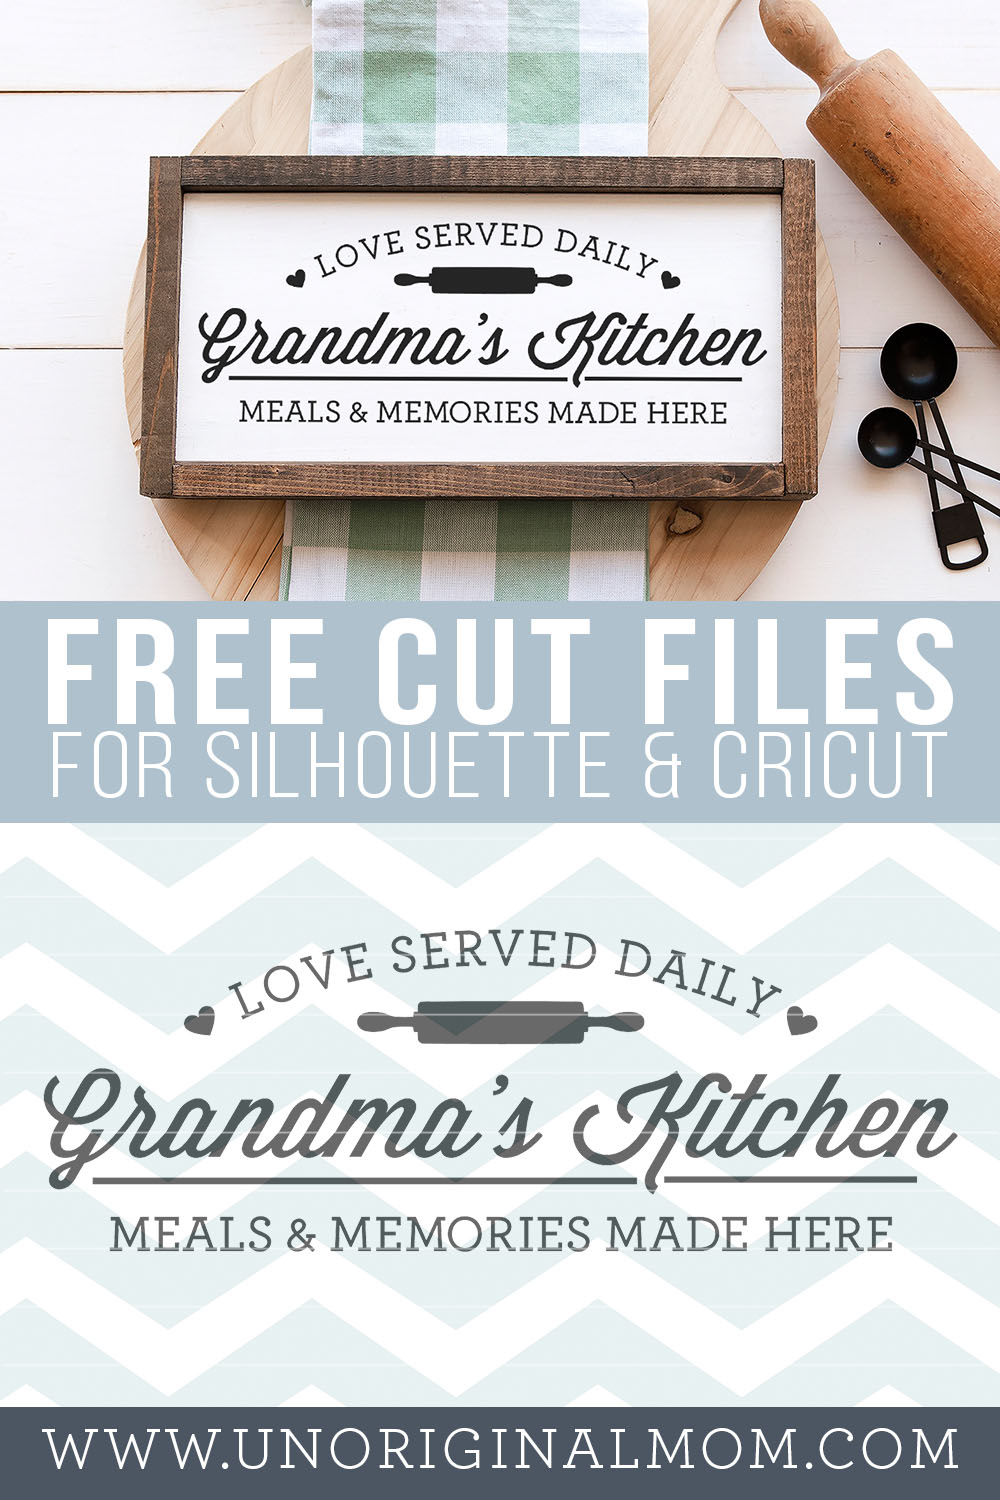 Grandma's Kitchen - DIY farmhouse style kitchen sign. Grab this free kitchen svg to make your own sign! #silhouette #cricut